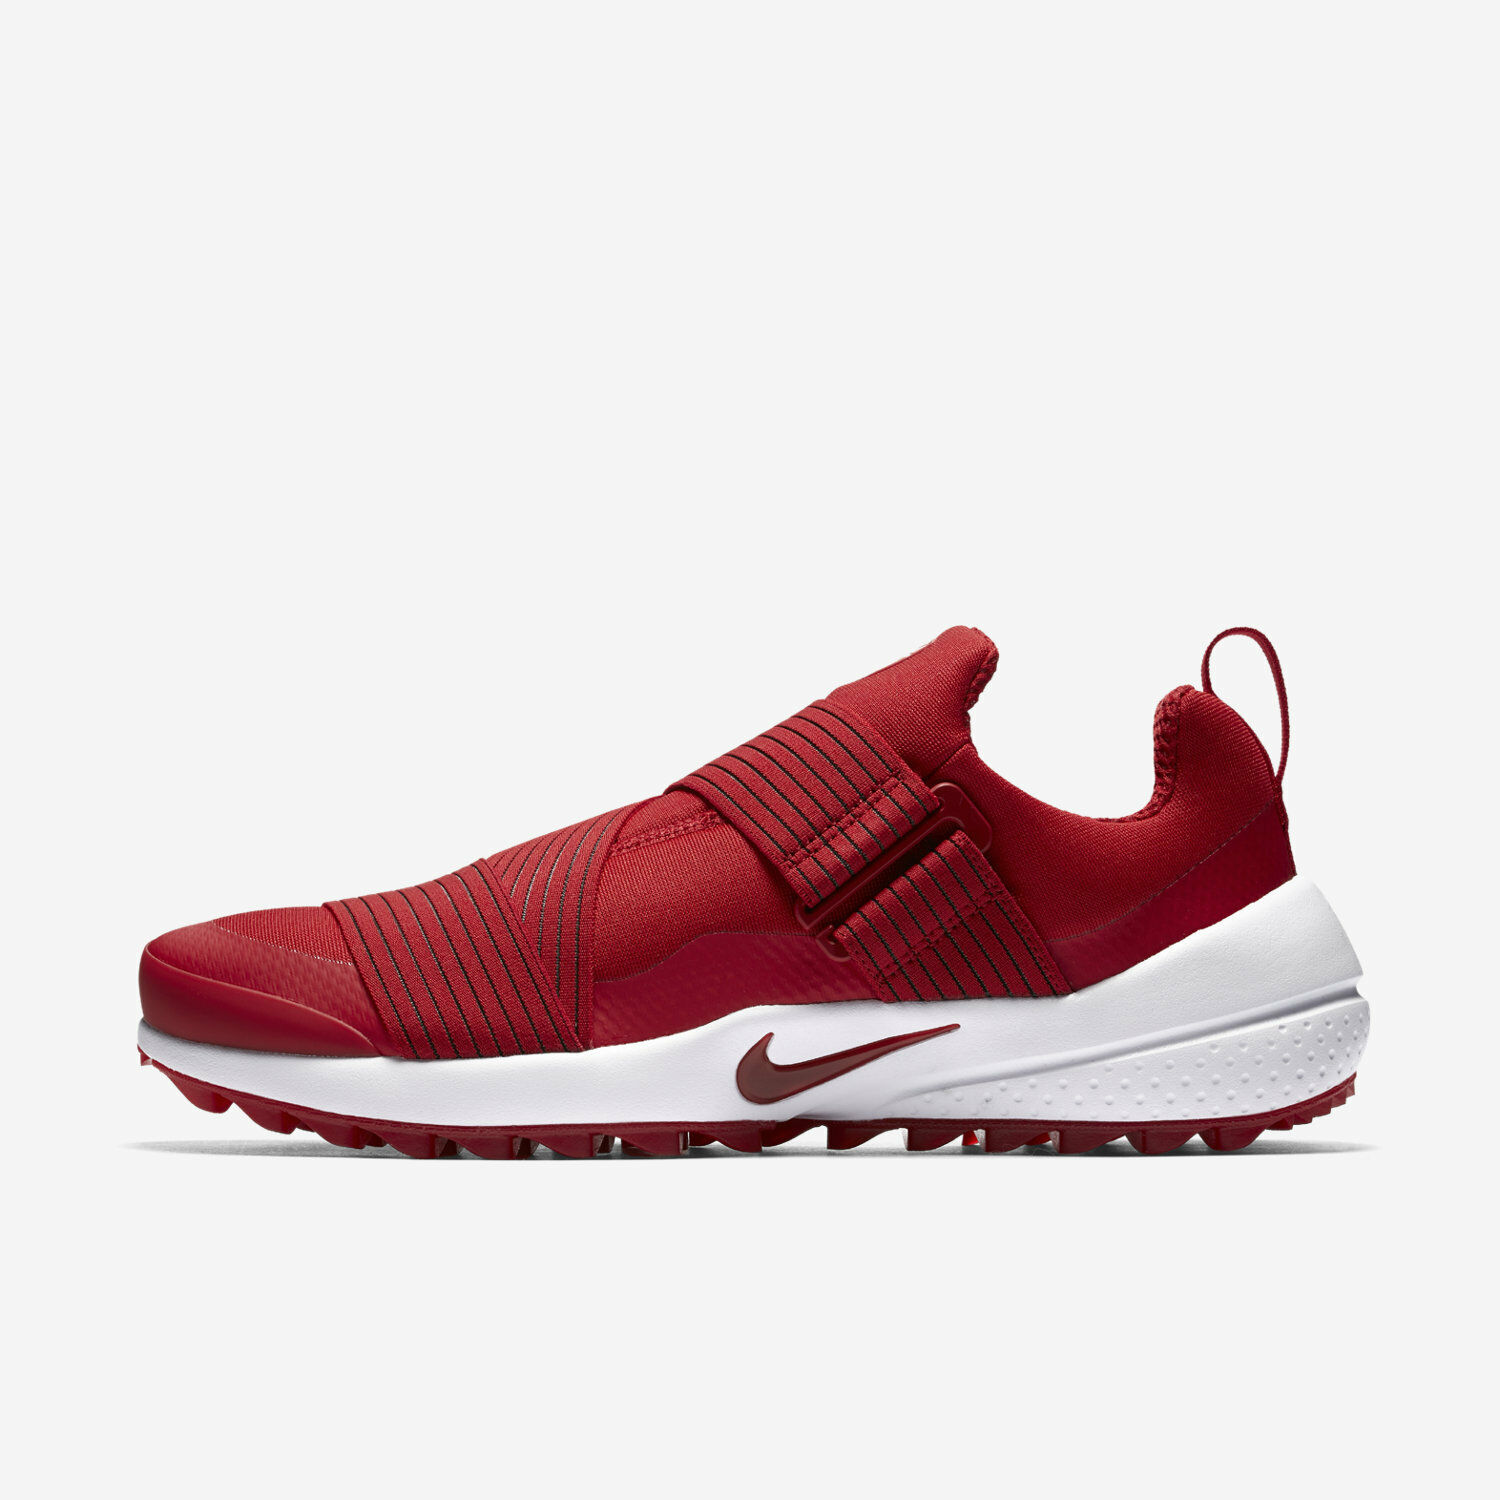 Seasonal price cuts, discount benefits Nike Air Zoom Gimme Men's Spikeless Golf Shoes - Team Red White 849955-600